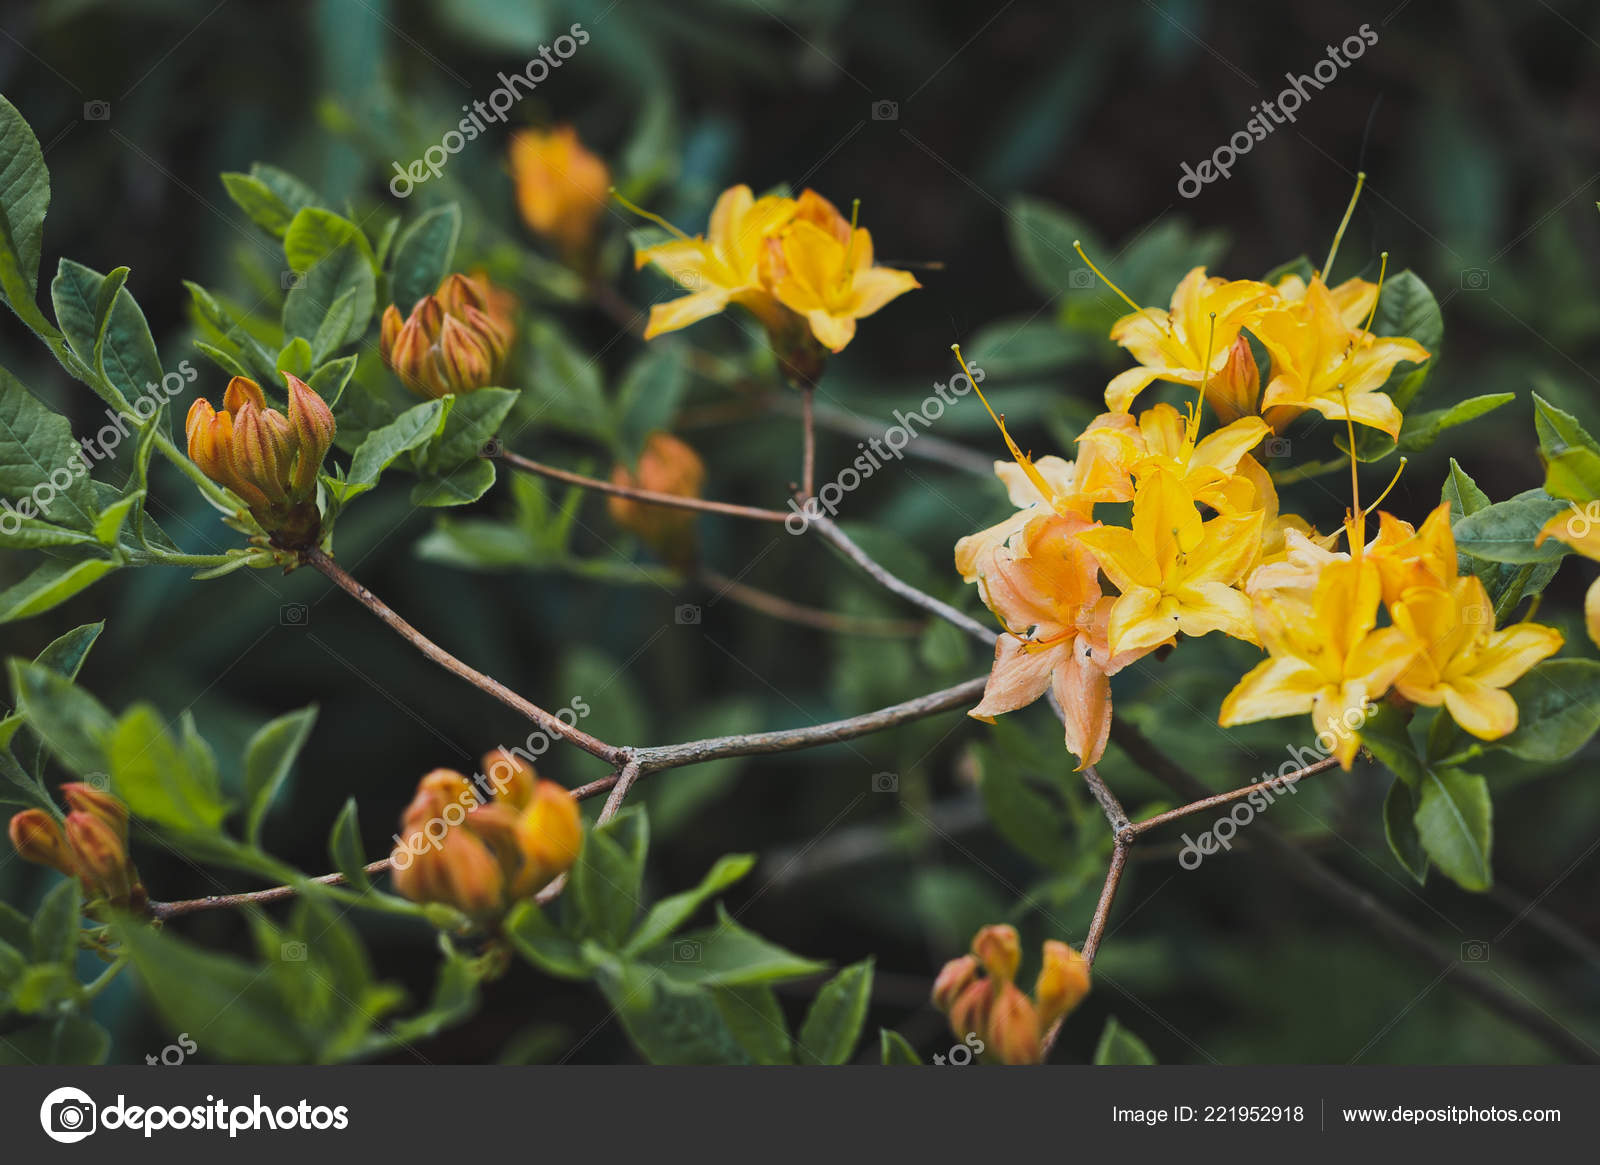 Flowers Rhododendron Yellow Flowering Stock Photo